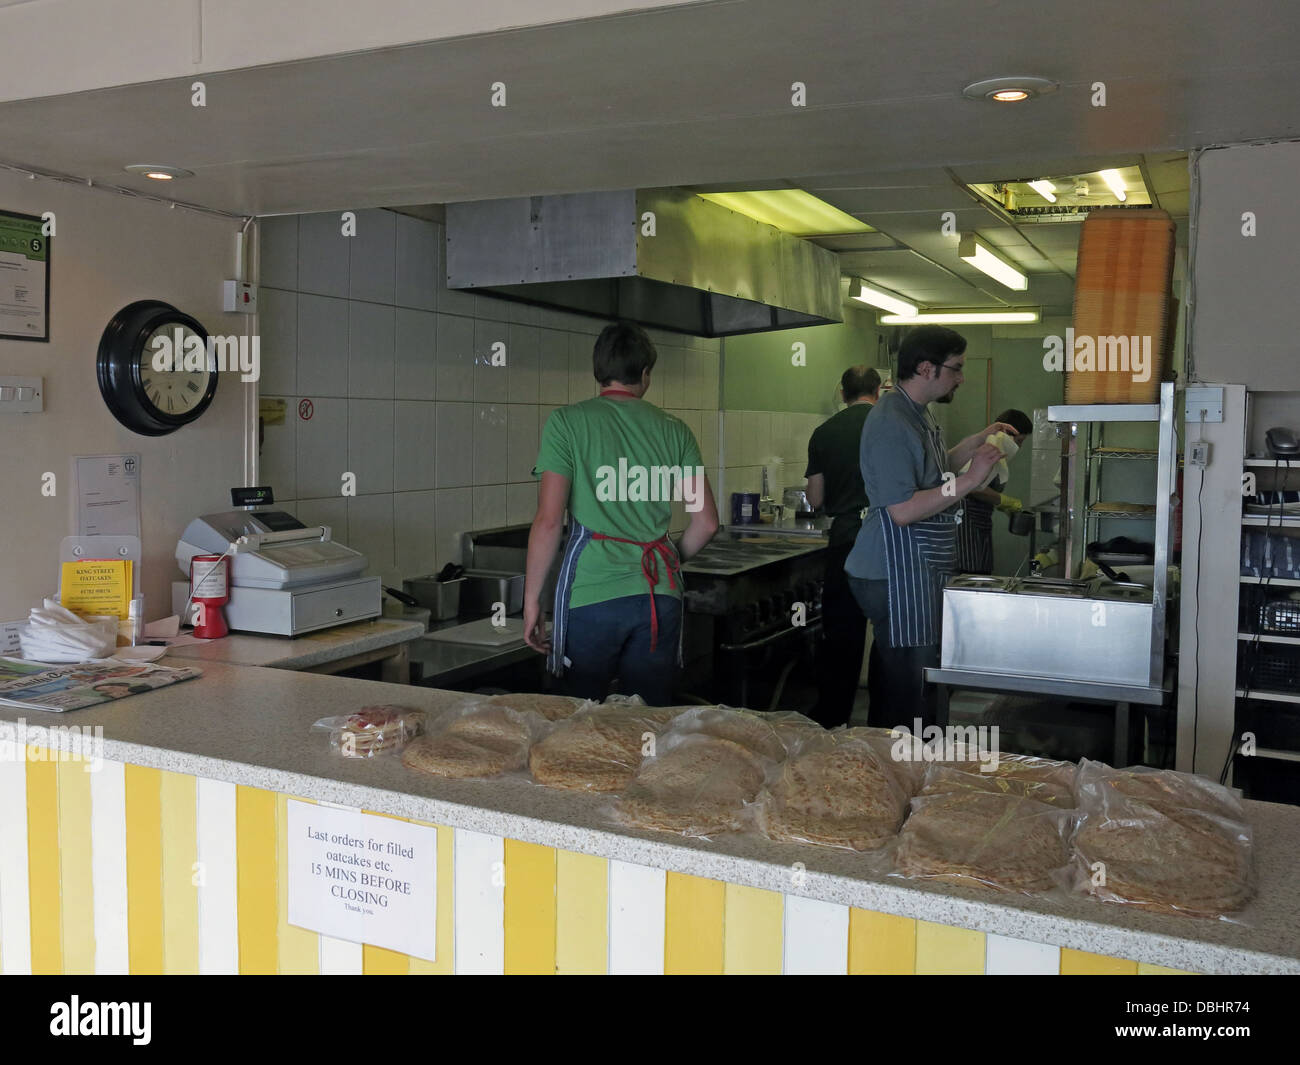 Interior of a traditional Stoke / Staffordshire Oatcake shop, with bright yellow frontage. - Stock Image